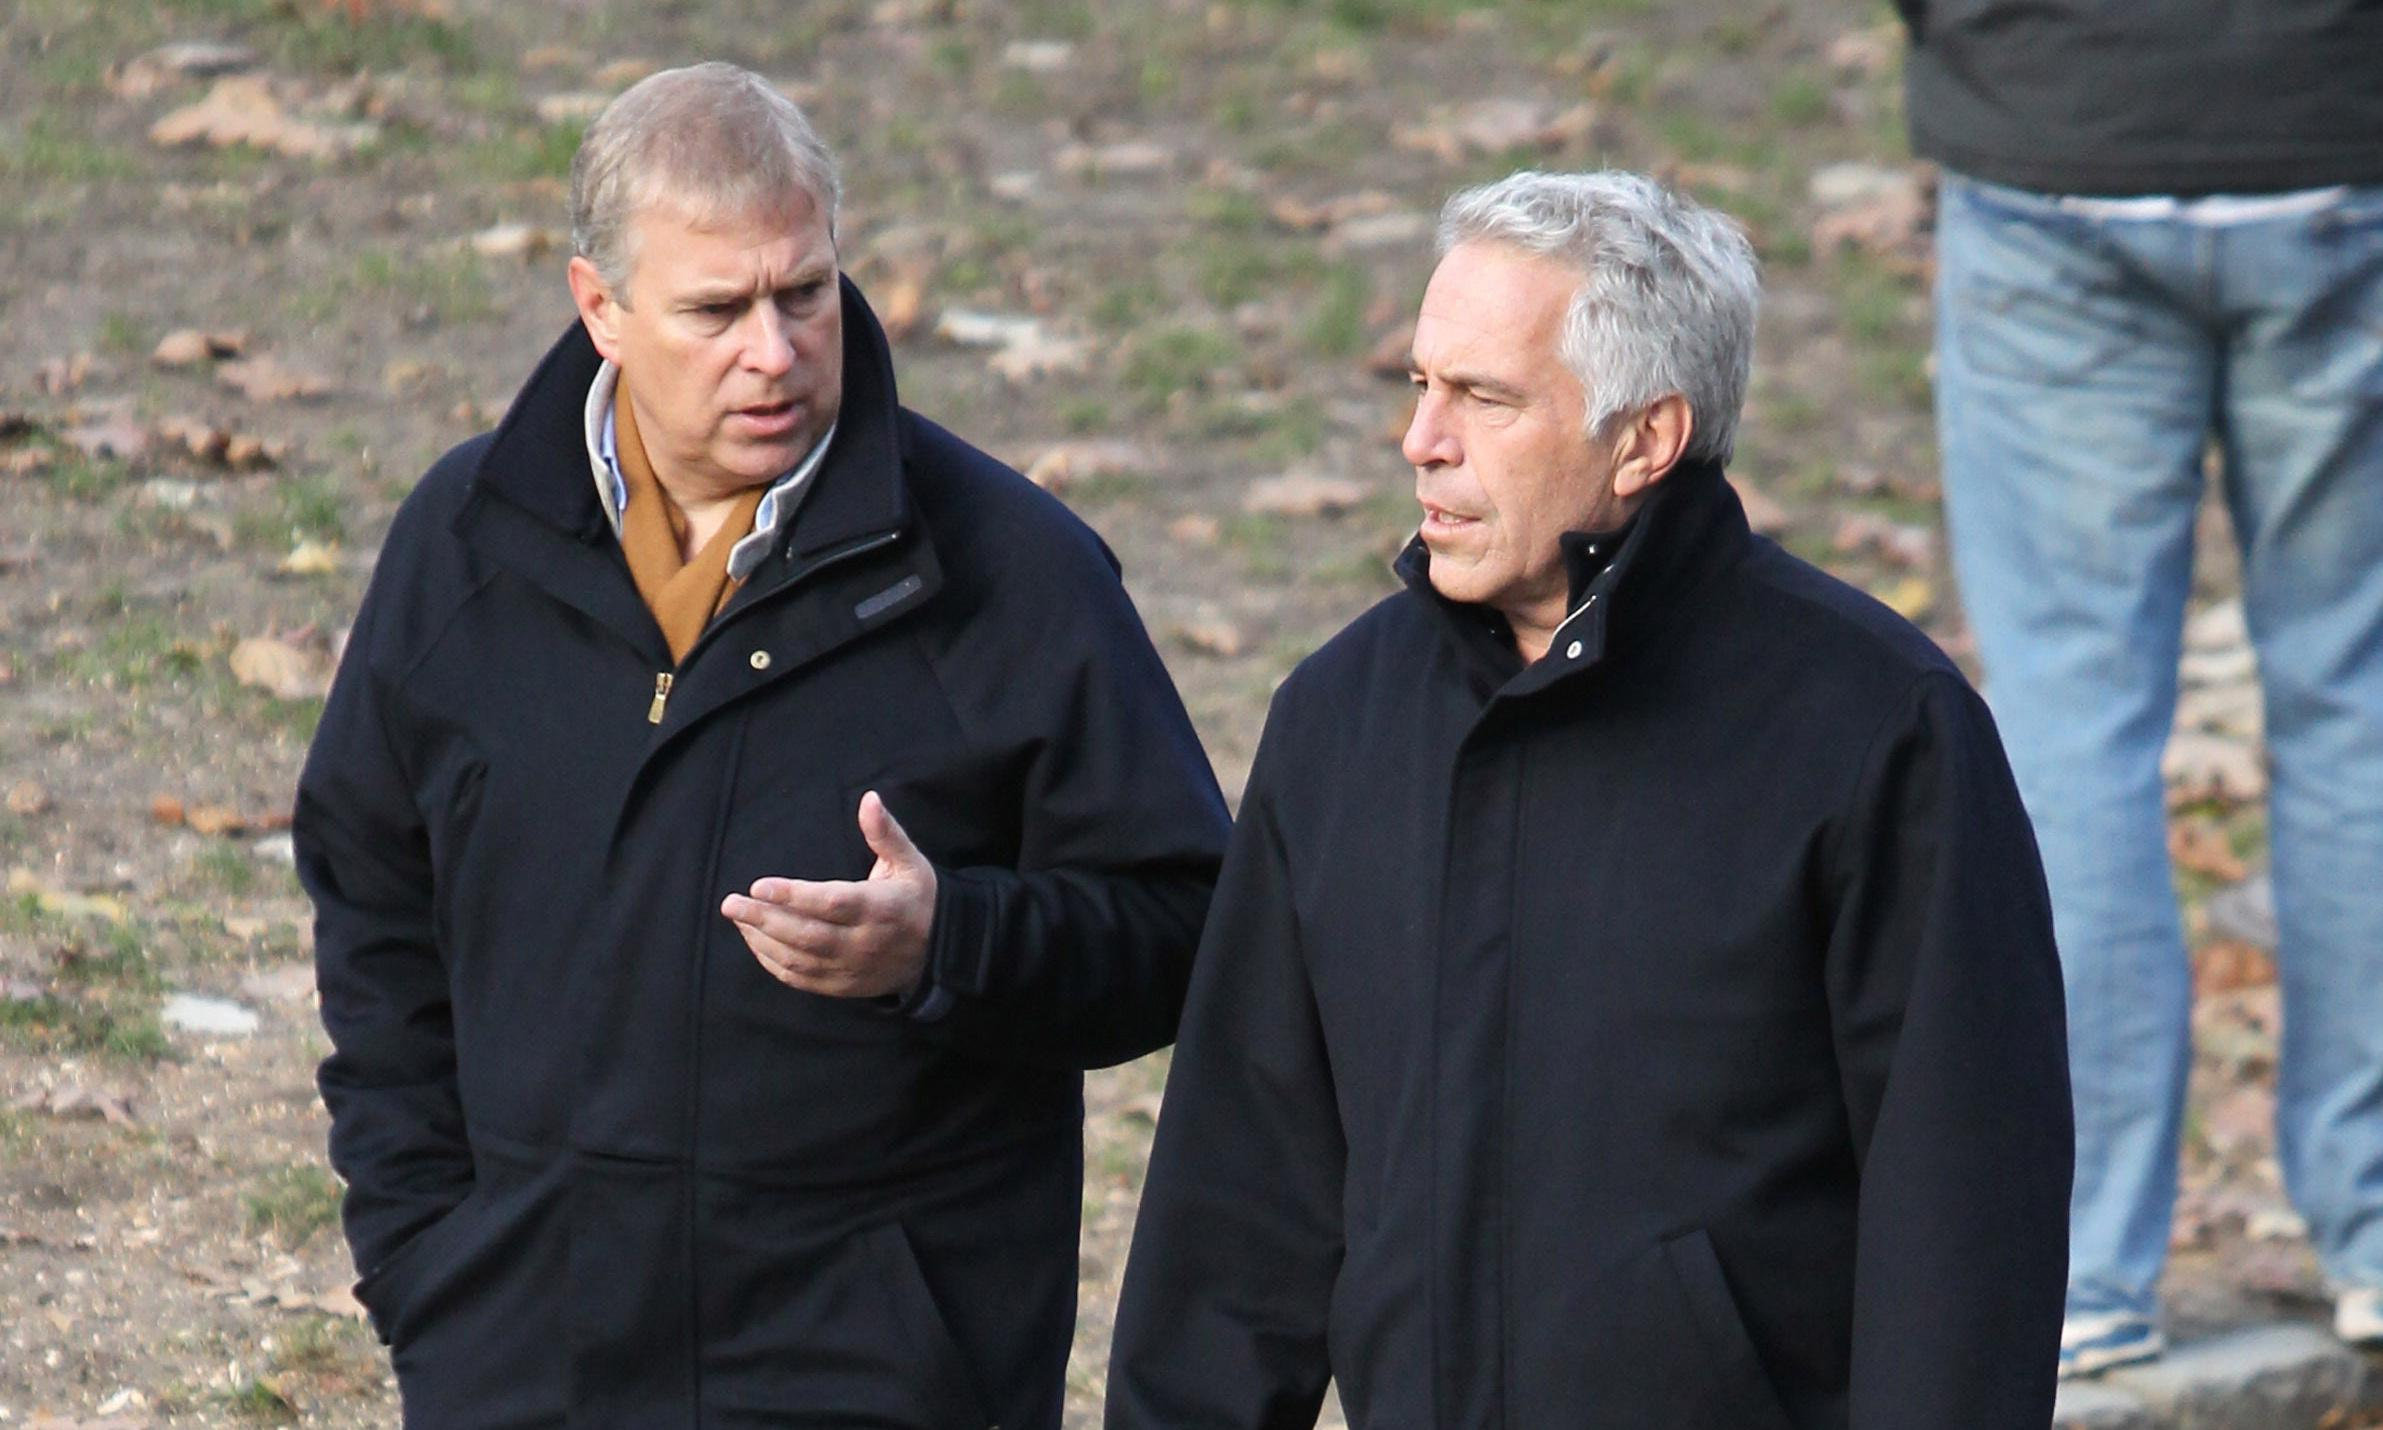 Poor Prince Andrew is 'appalled' by Epstein. Let that be an end to it